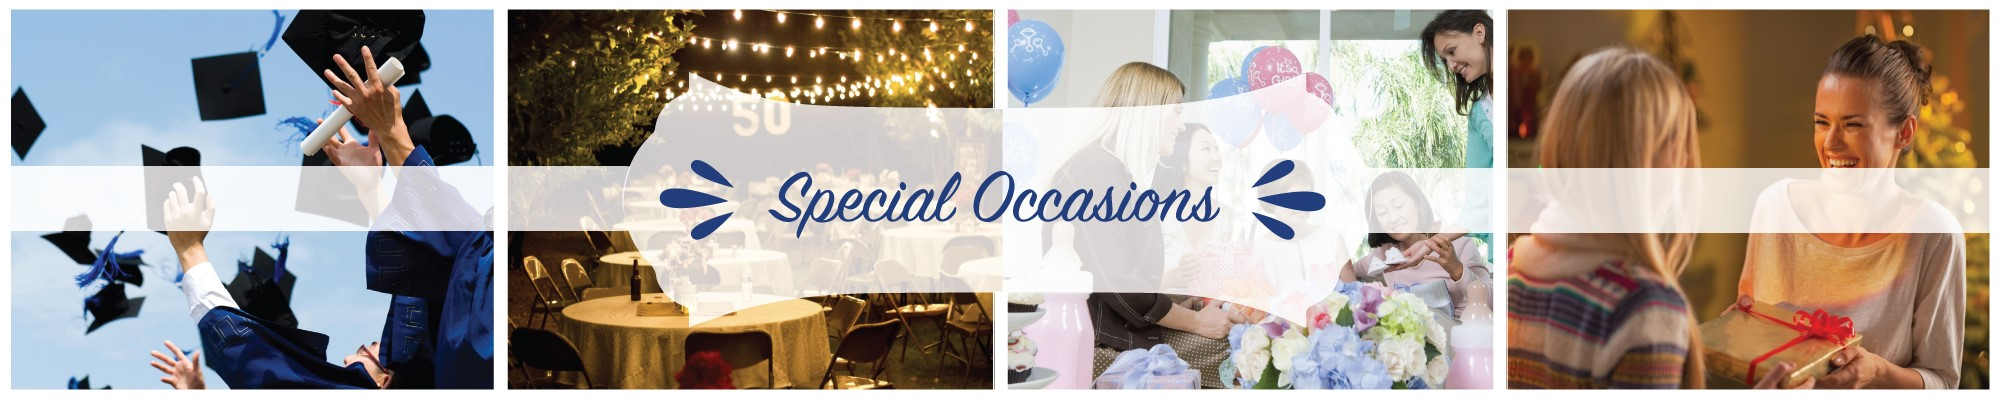 Personalized Gifts For Special Occasions